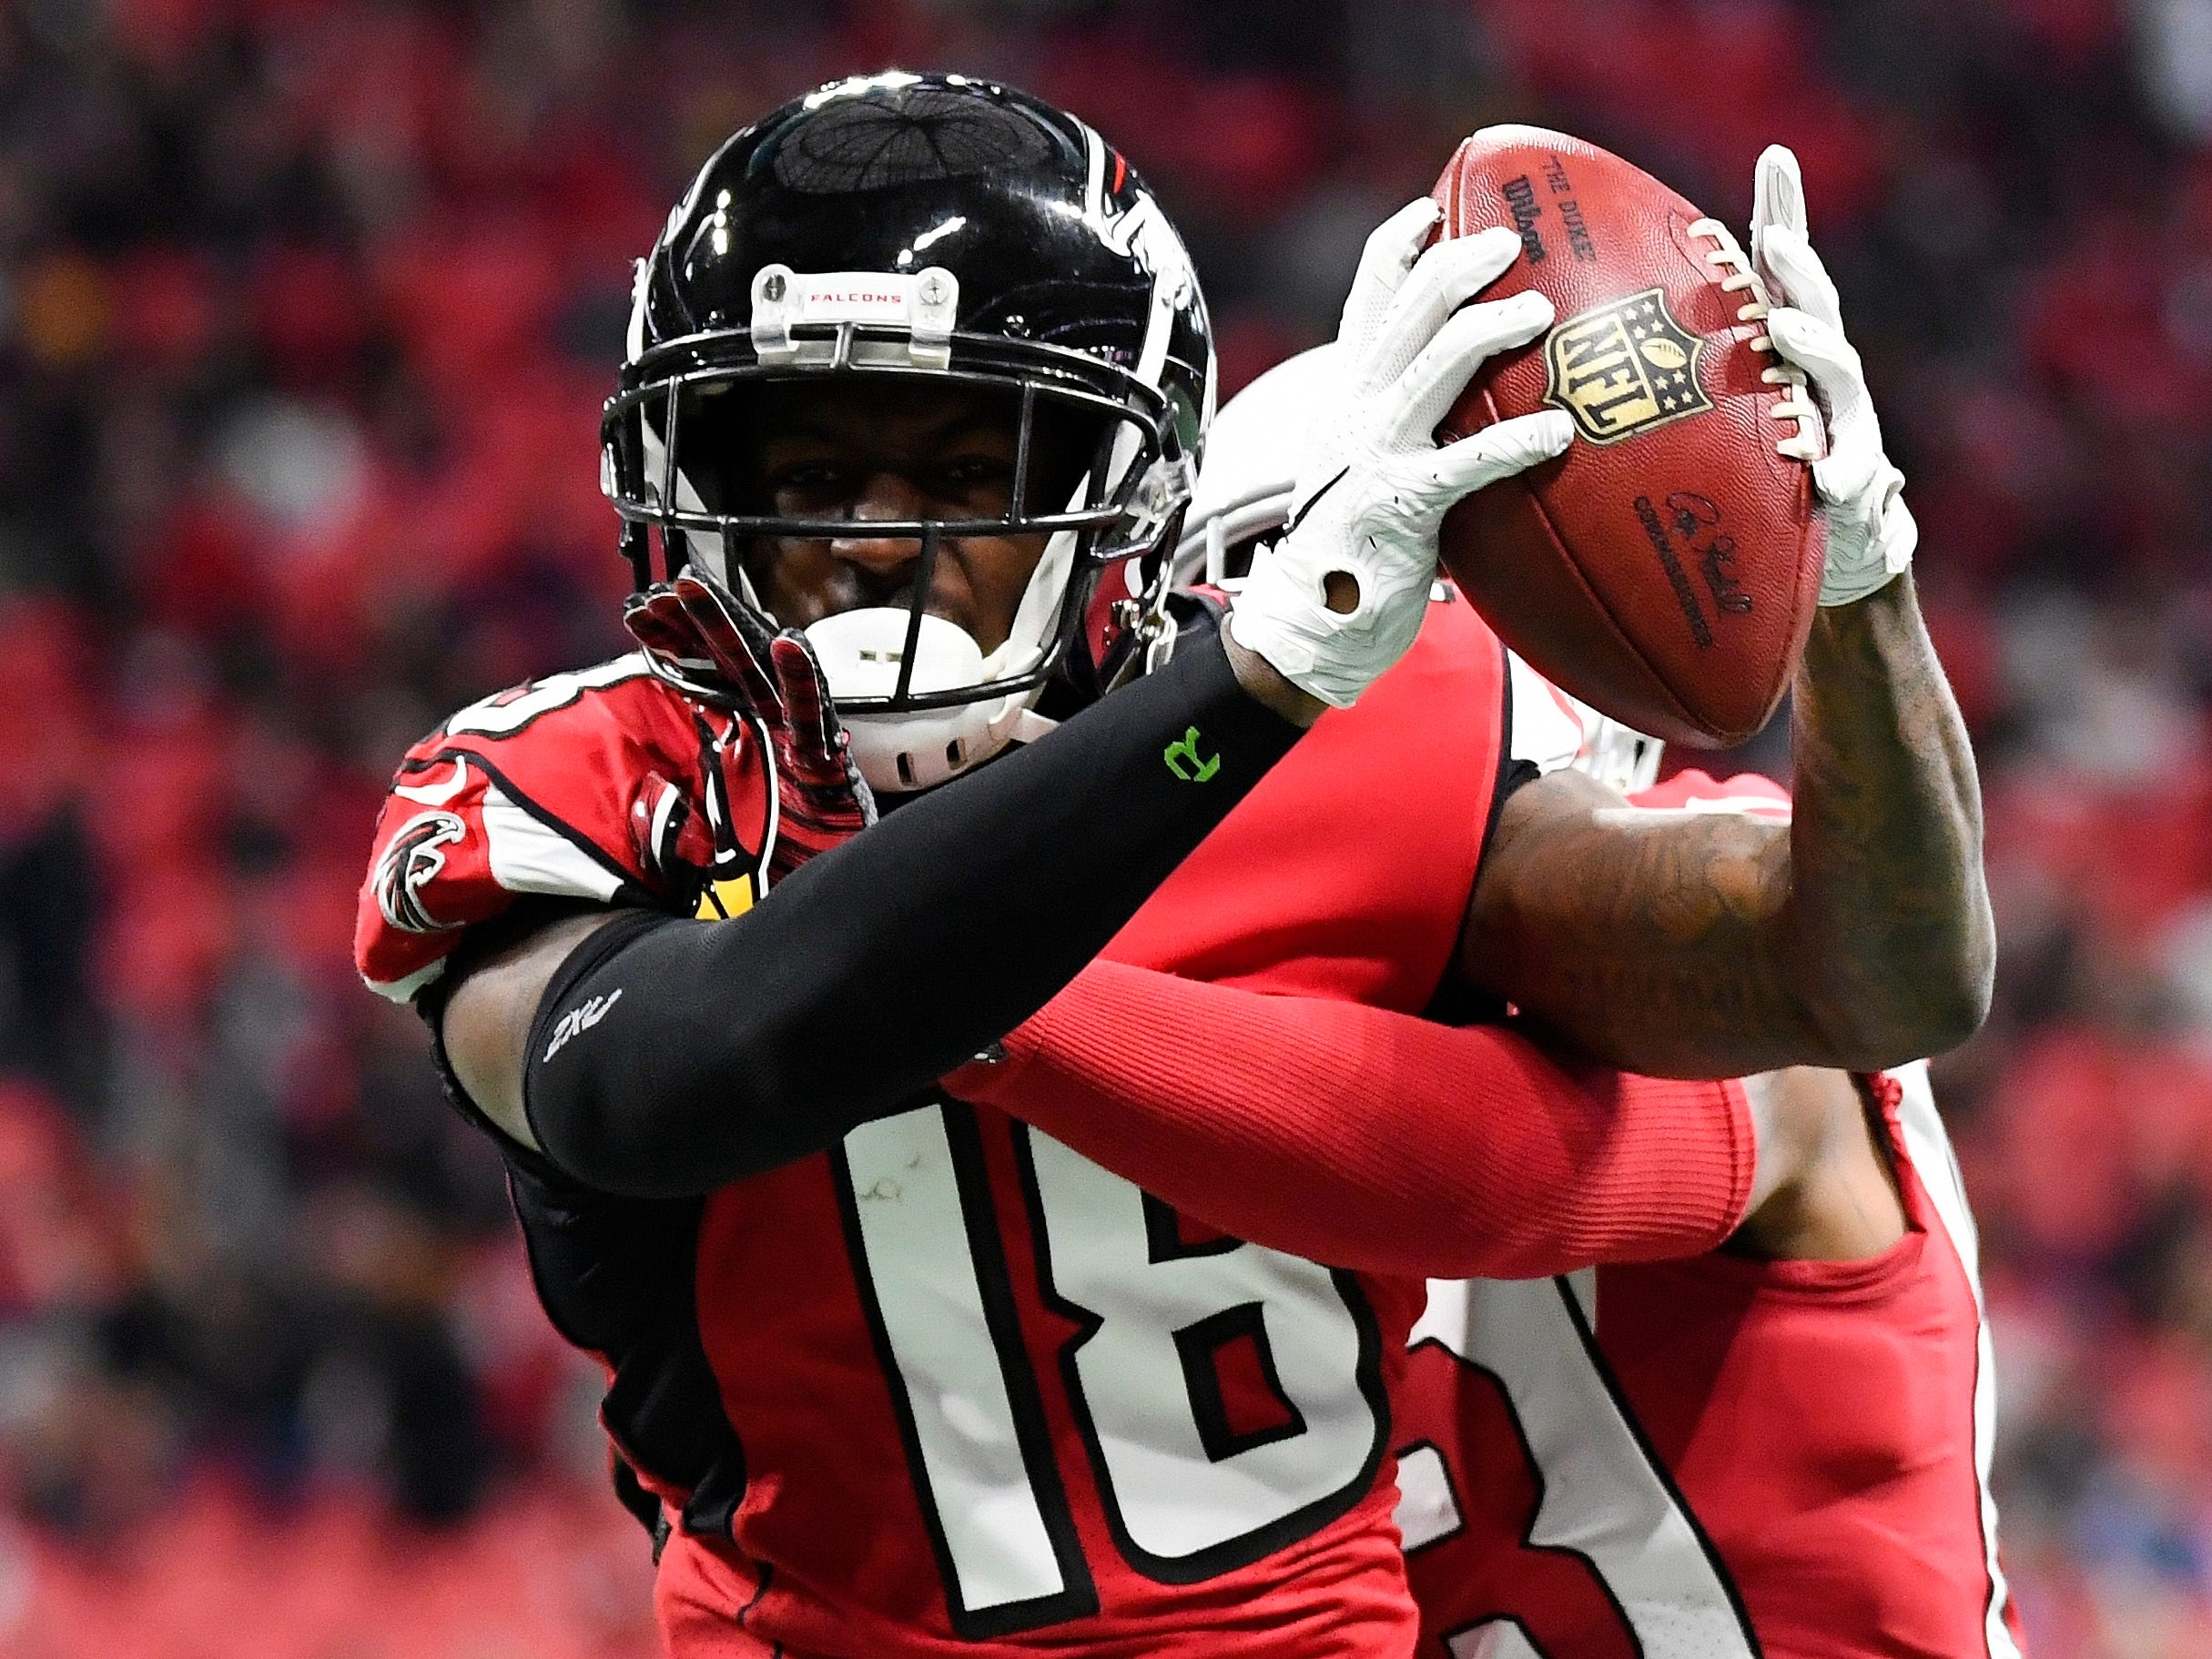 Falcons wide receiver Calvin Ridley makes a catch as Cardinals defensive back David Amerson defends.